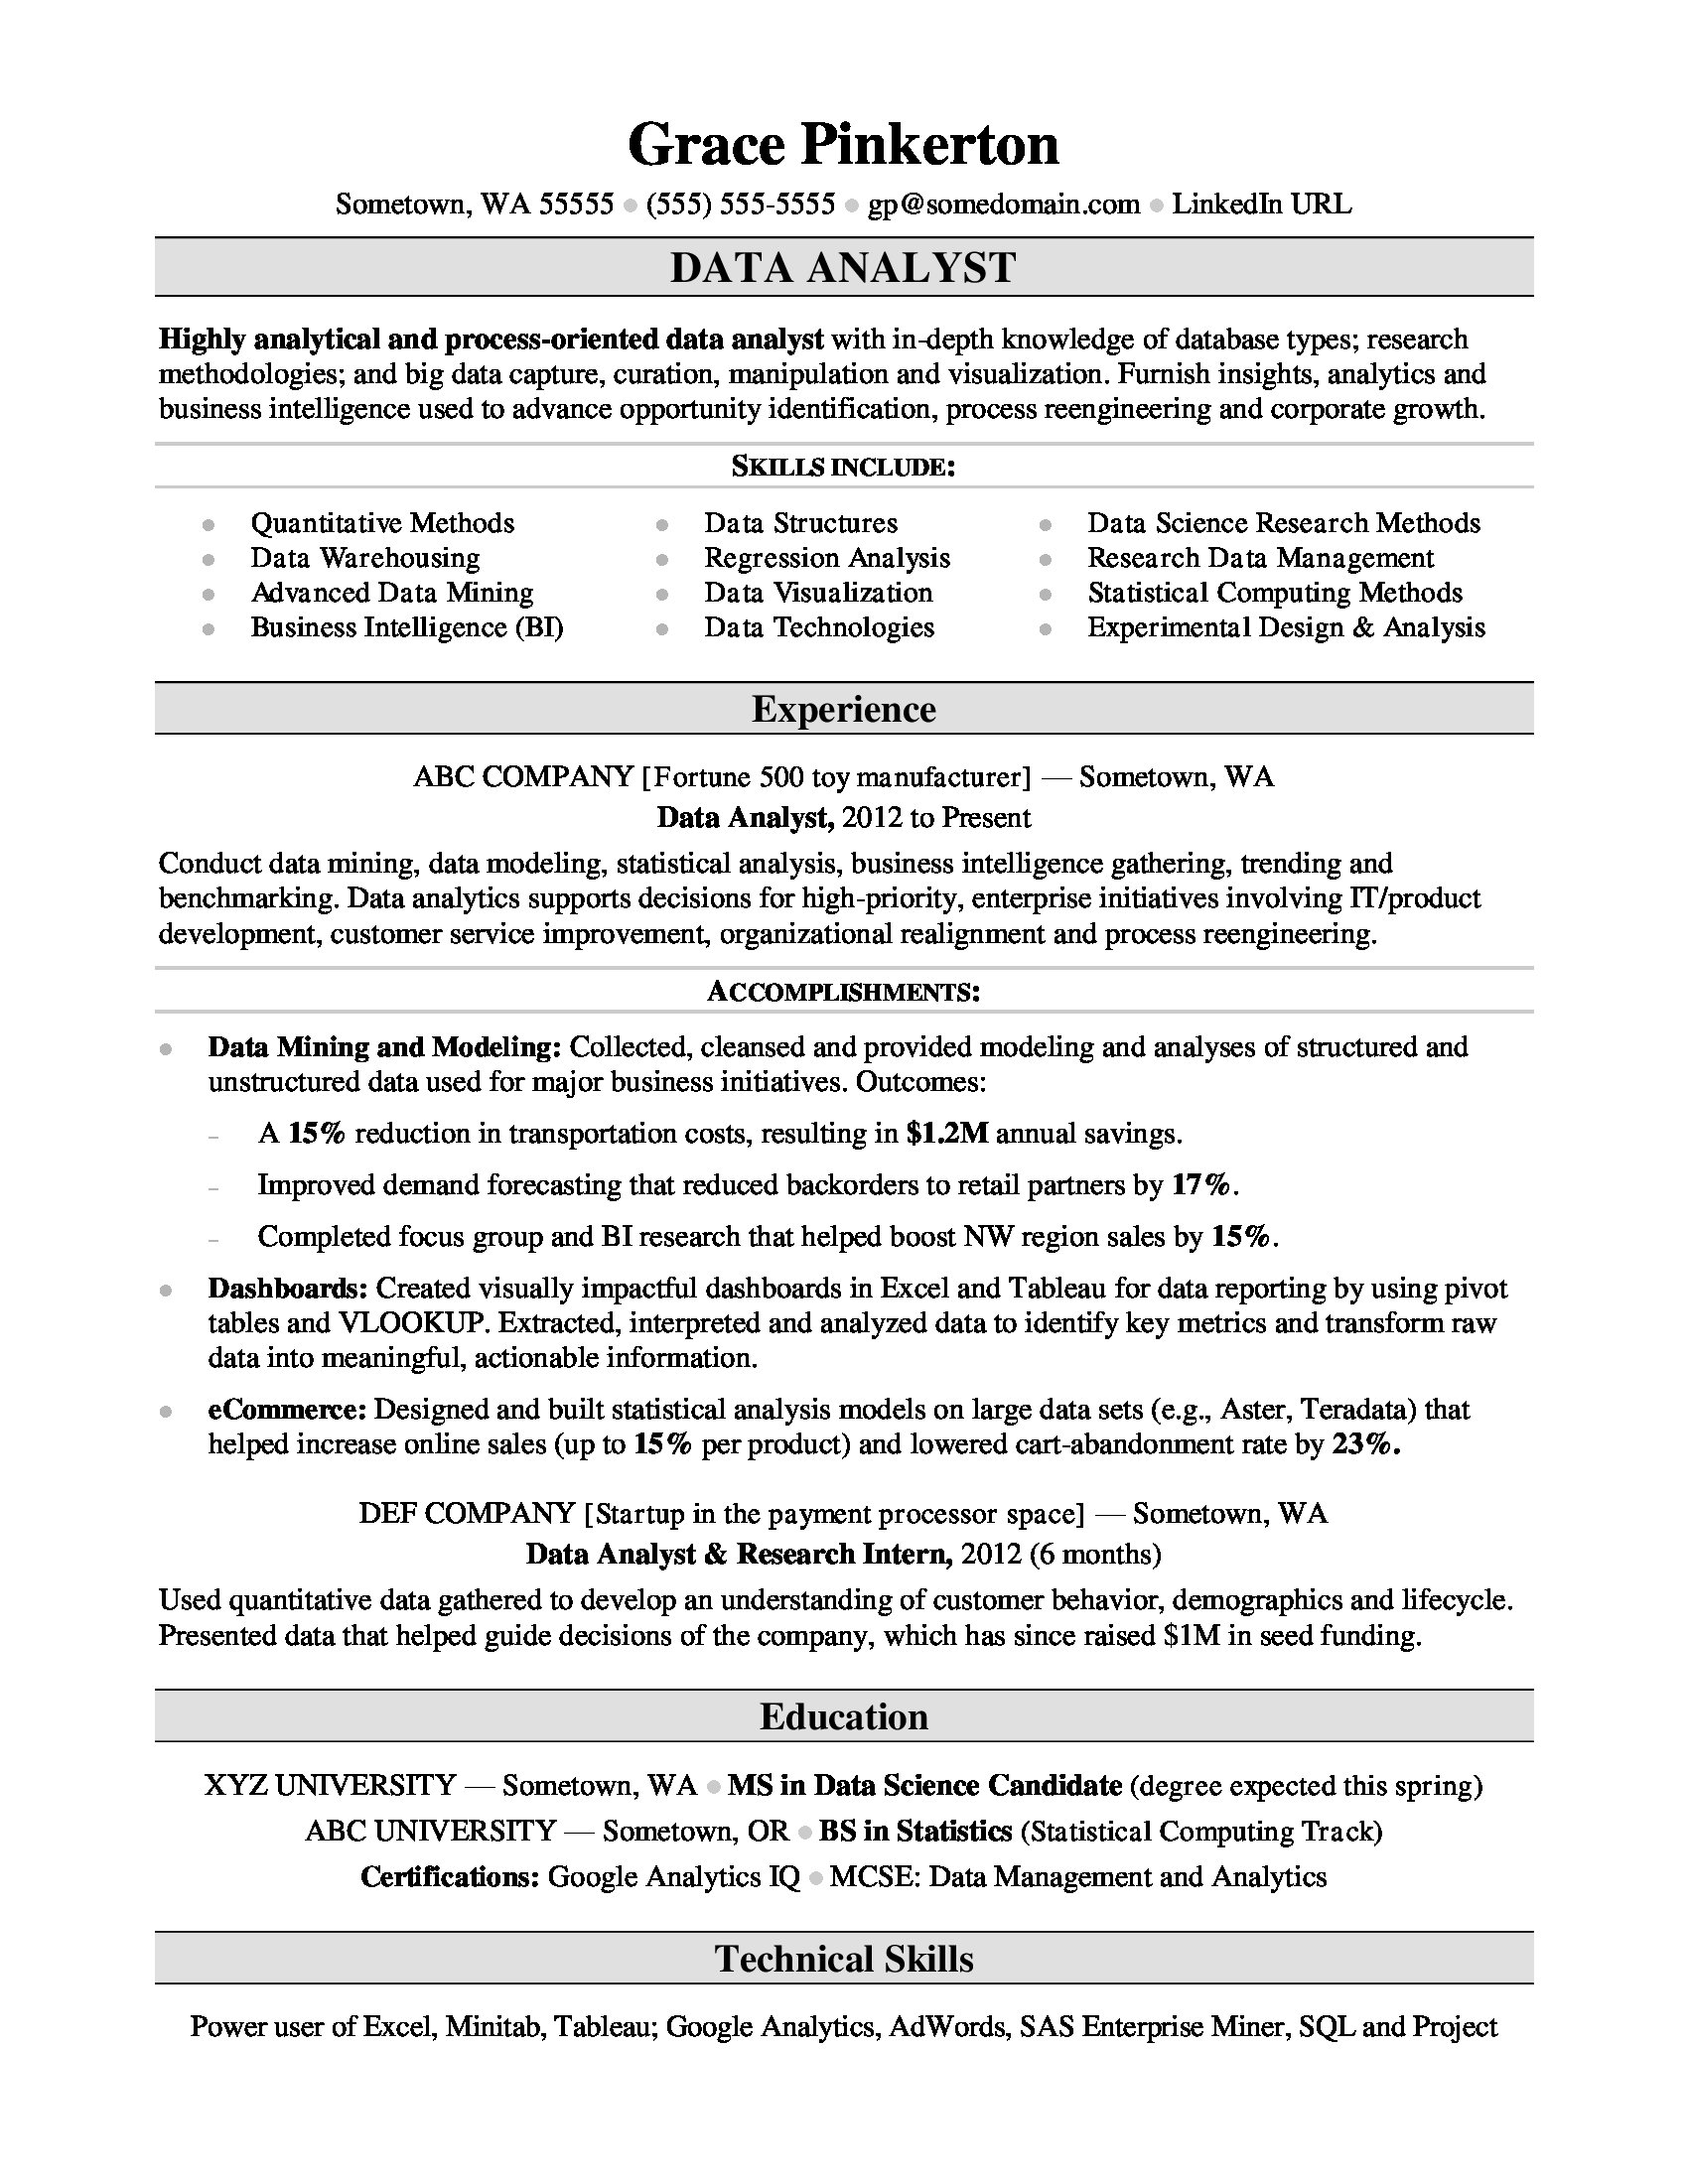 data analyst resume sample monster projects for science dataanalyst warehouse lead job Resume Projects For Data Science Resume